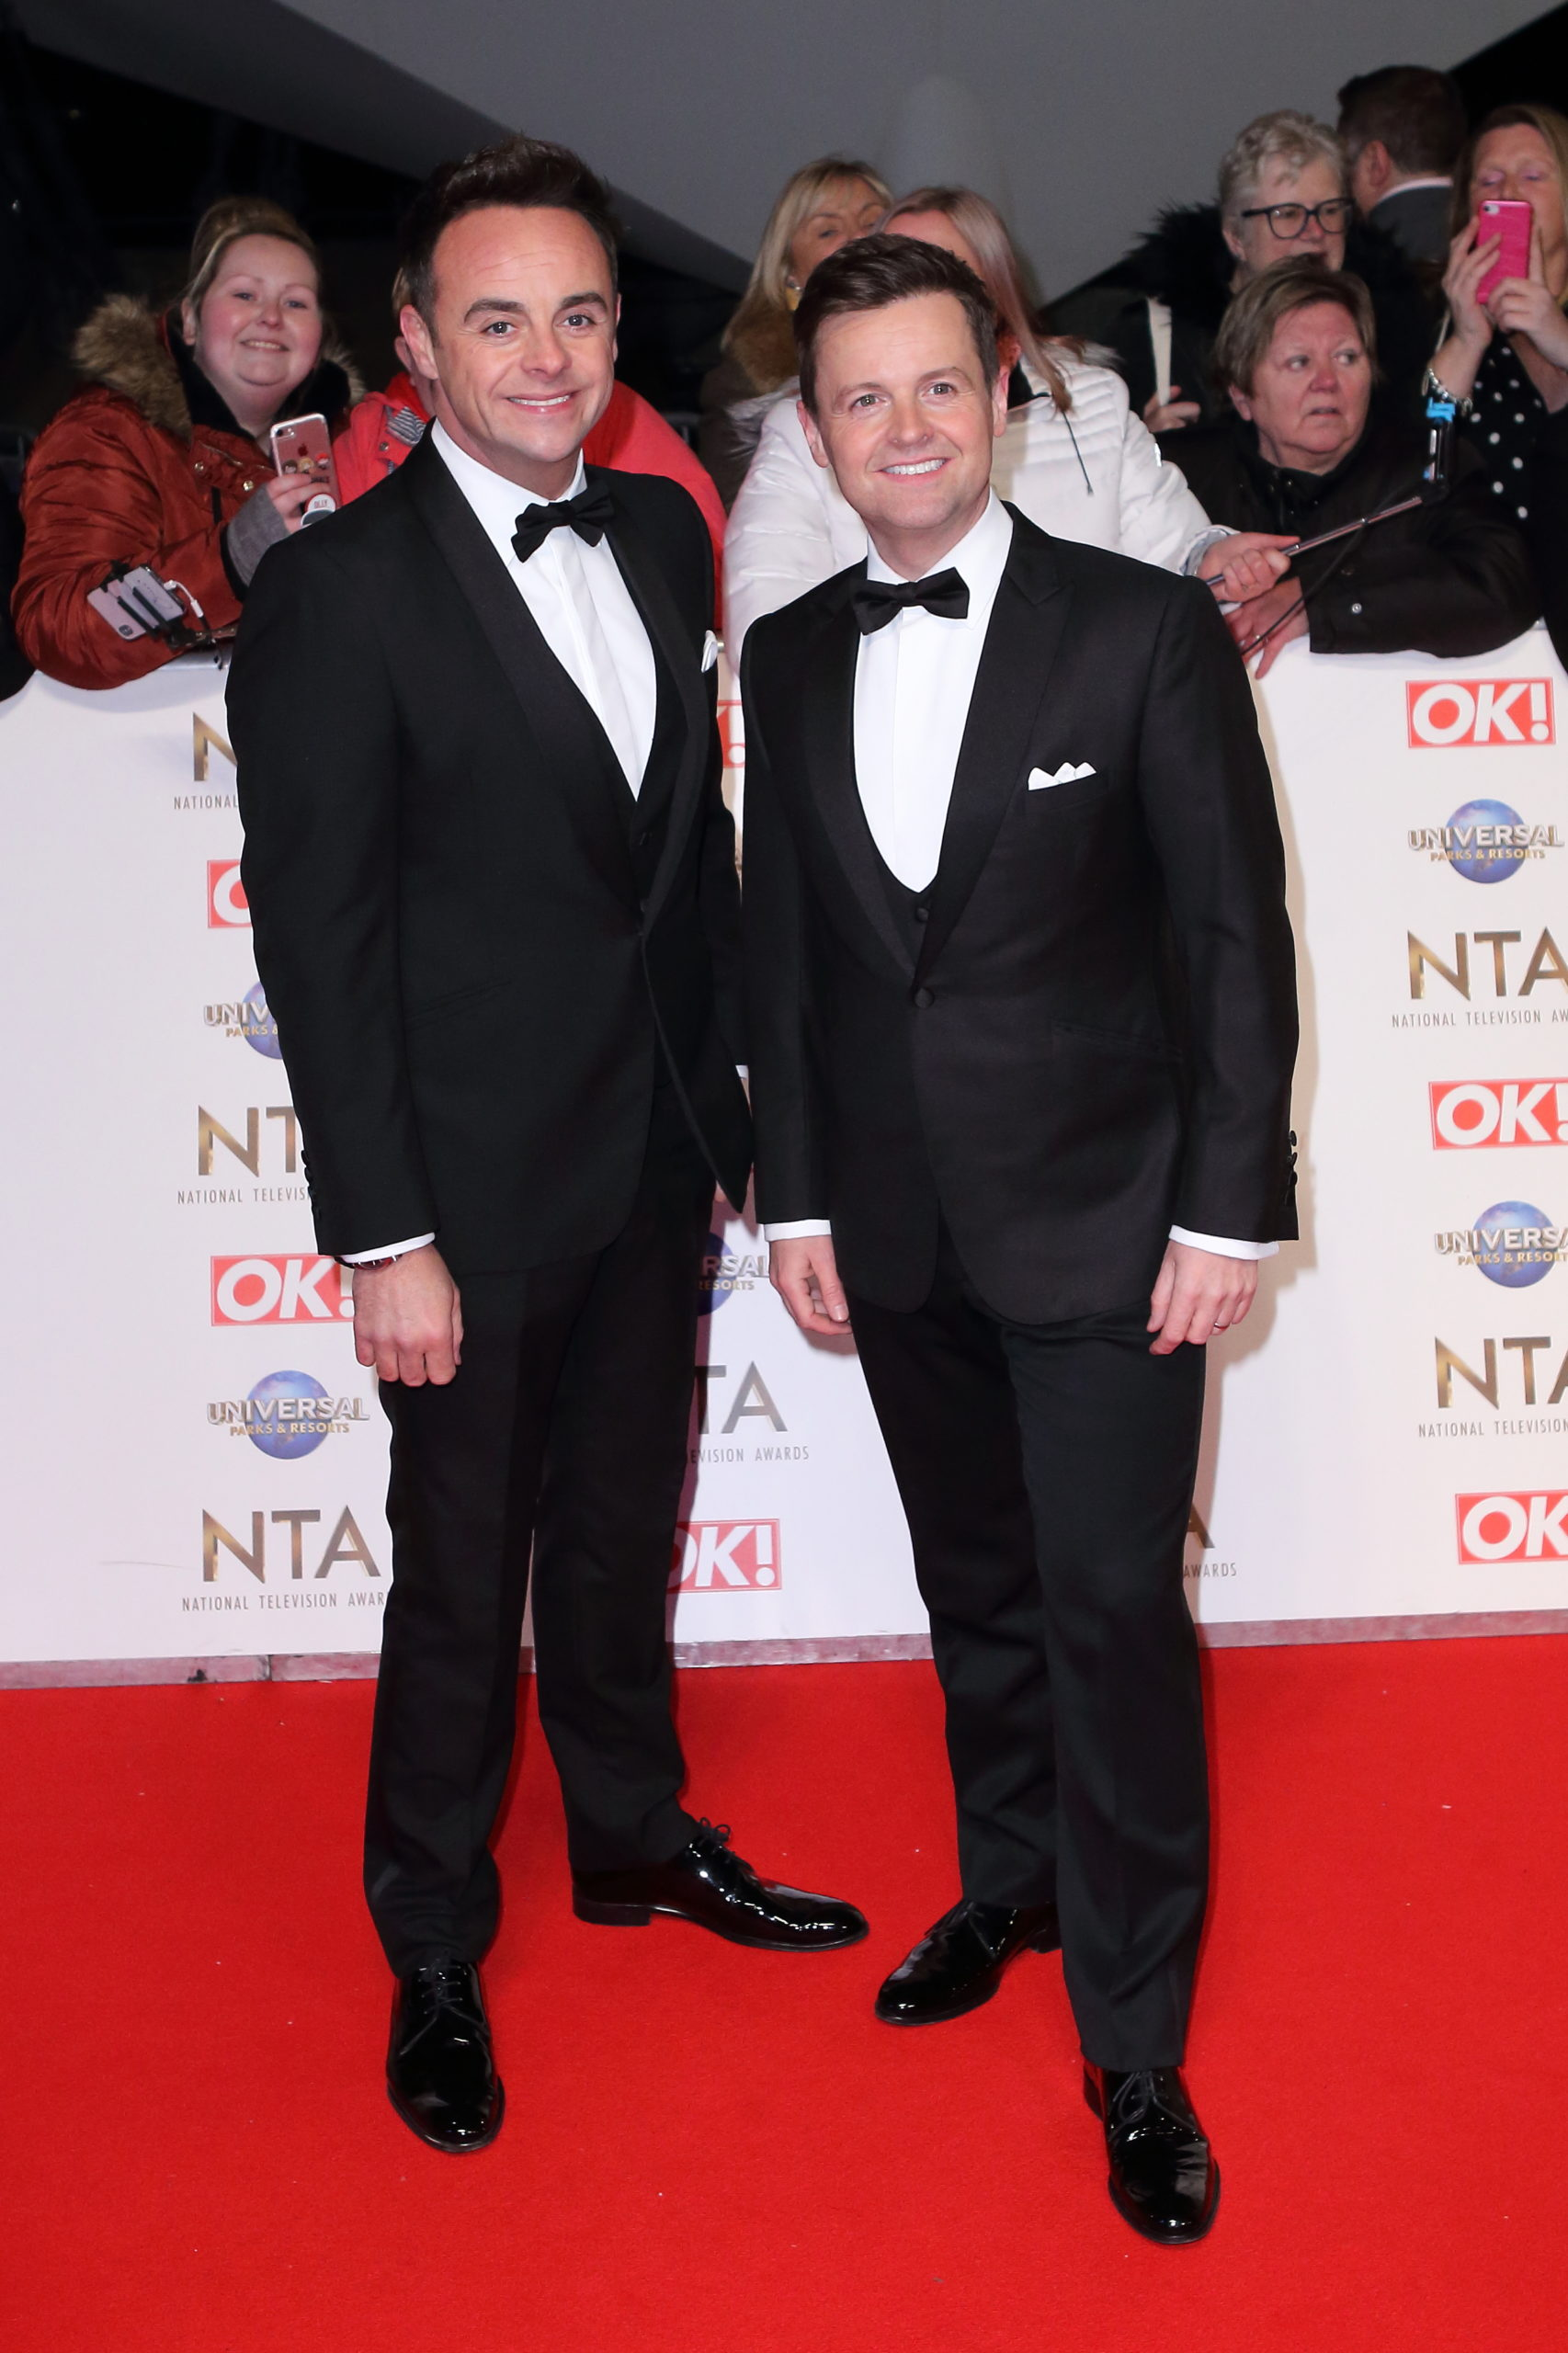 Ant and Dec have recently celebrated 30 years in television